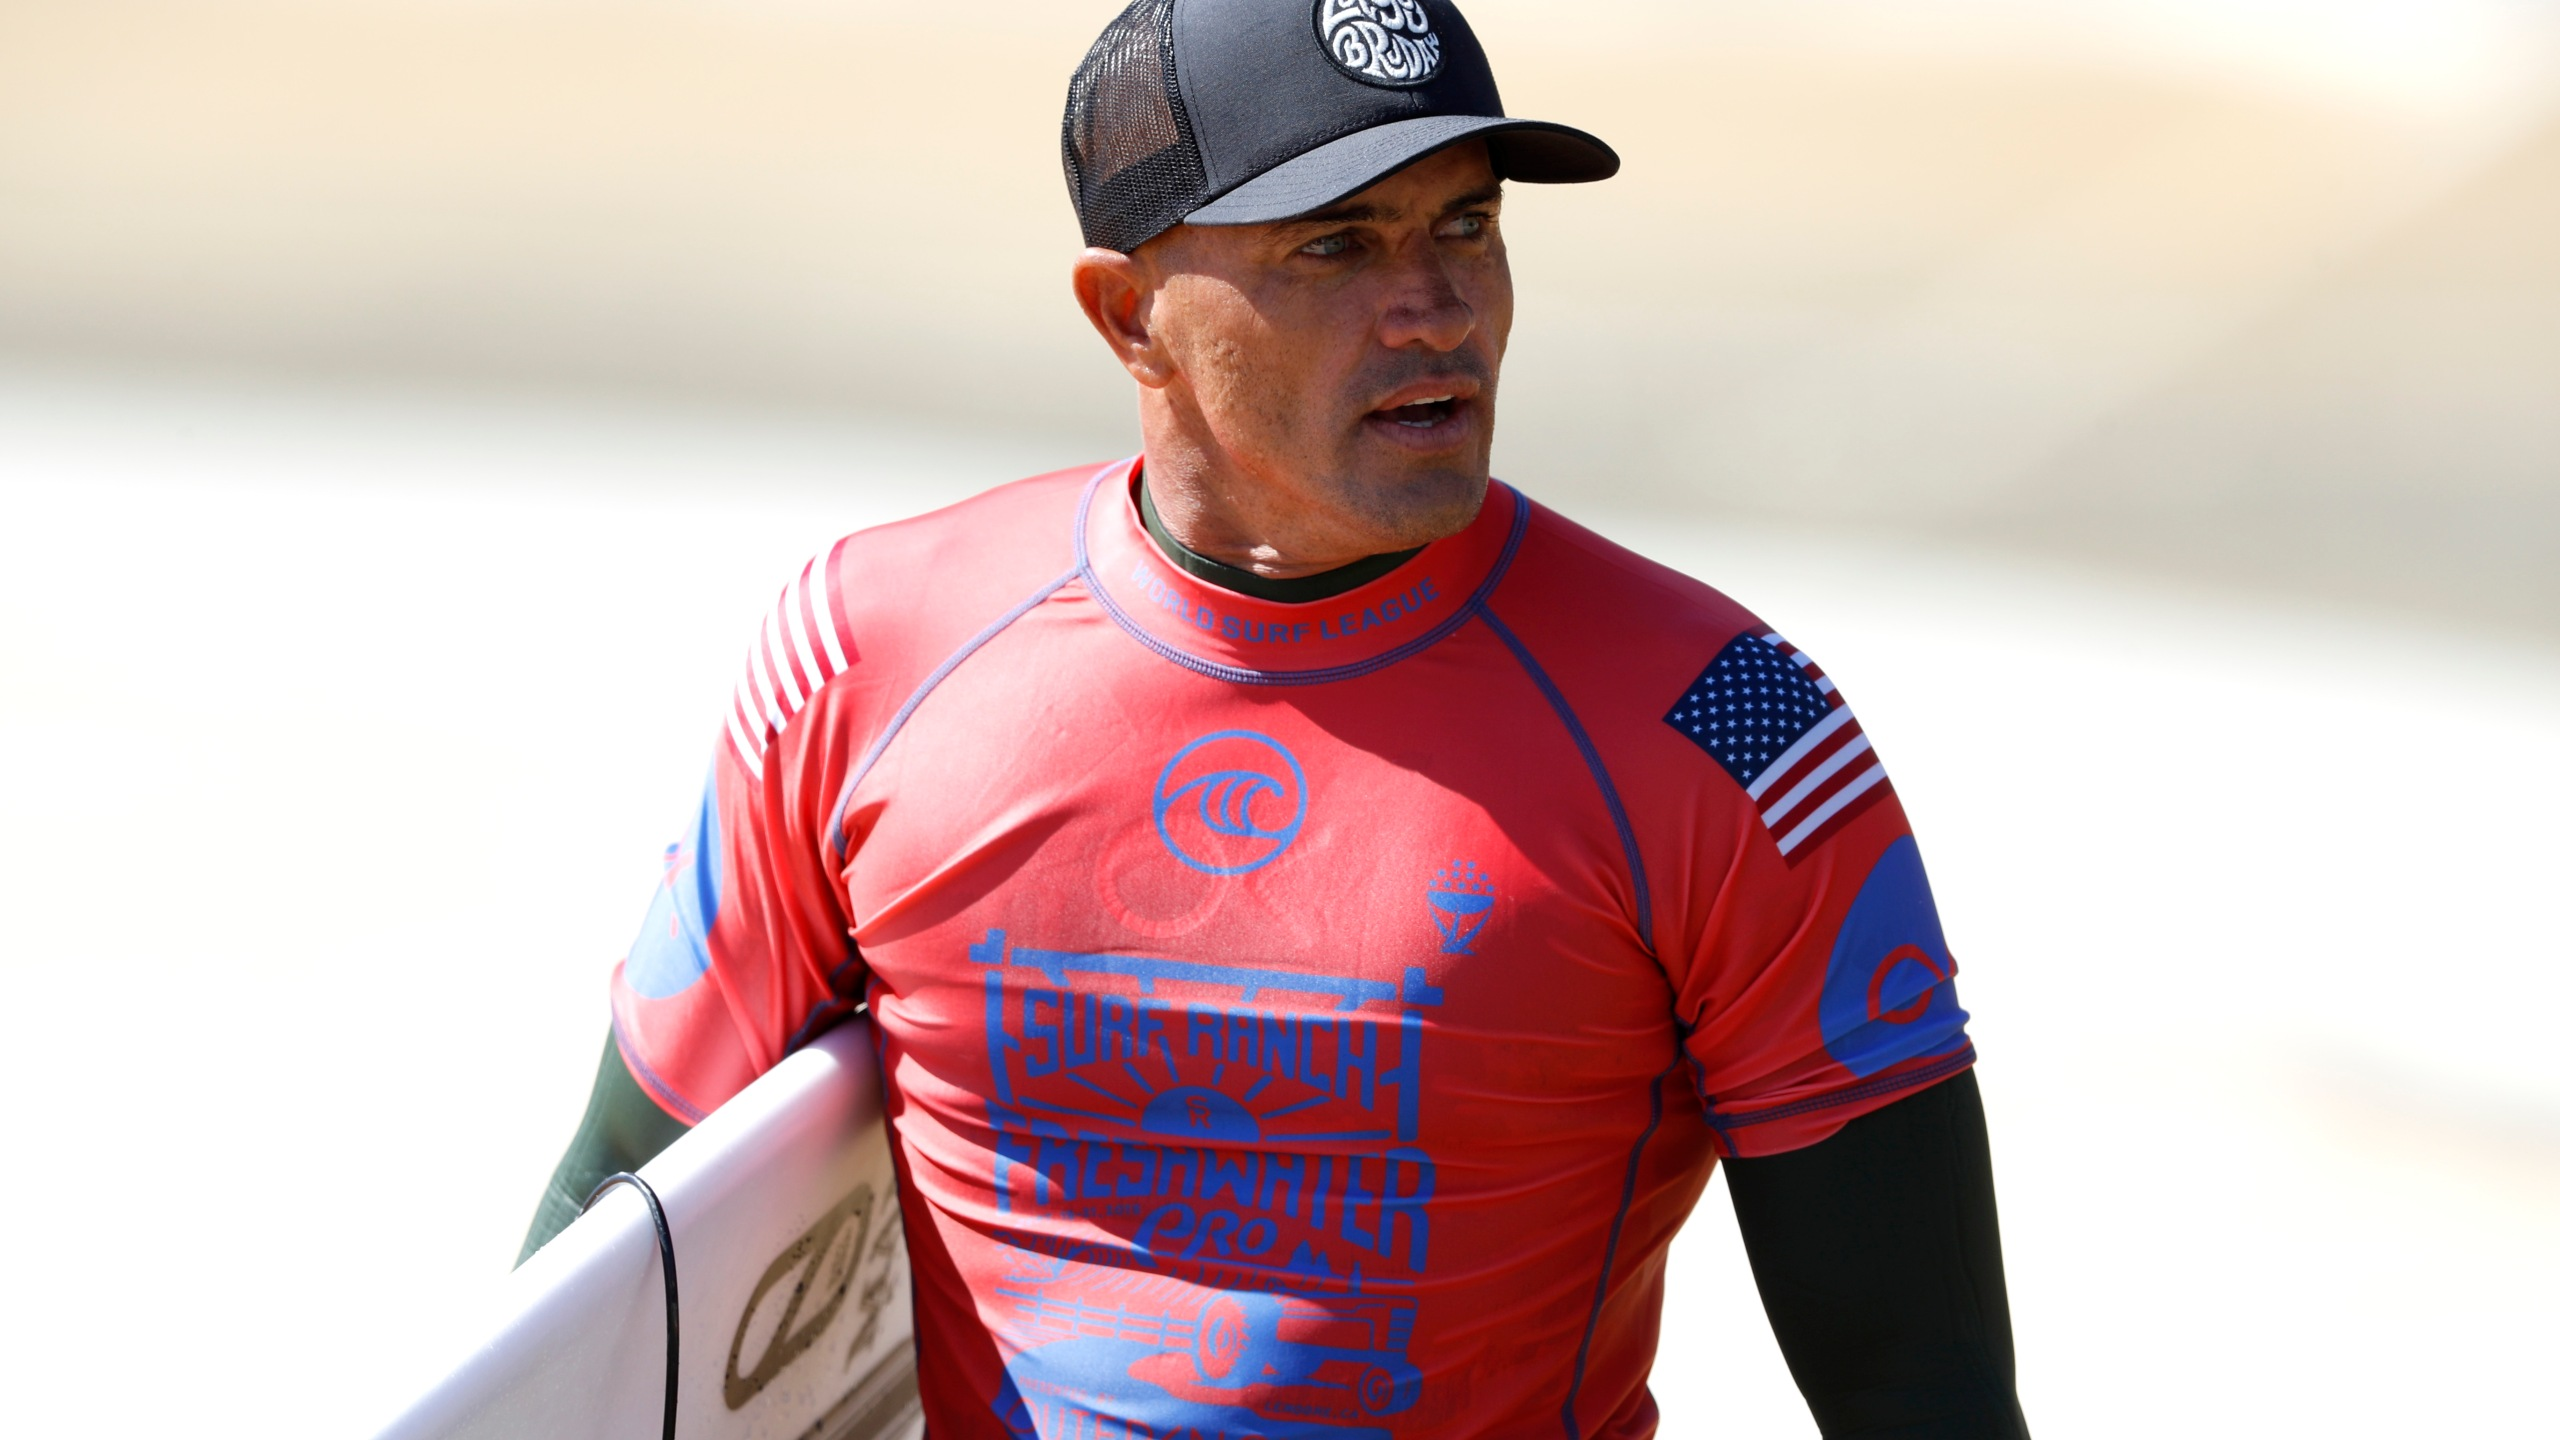 Kelly Slater of the United States looks on during the 2019 Freshwater Pro-WSL on September 21, 2019 in Lemoore, California. (Credit: Sean M. Haffey/Getty Images)